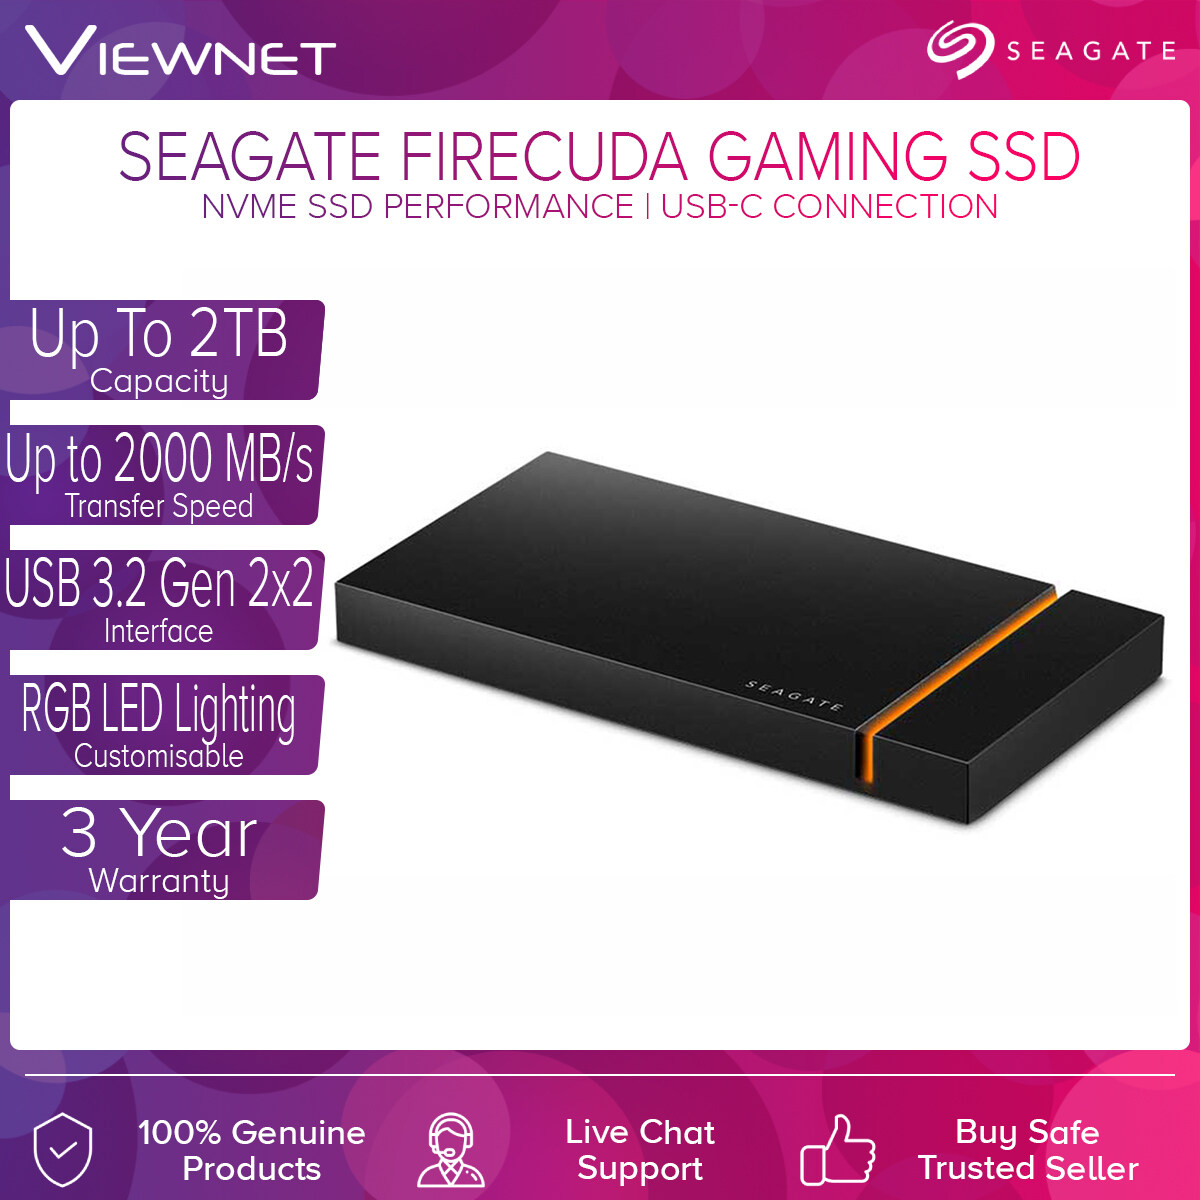 Seagate FireCuda Gaming SSD (1TB / 2TB) with USB-C Connection, Up To 2000MB/s Transfer Speed, Customisable RGB LED Lighting , USB 3.2Gen 2x2, NVMe SSD Performance